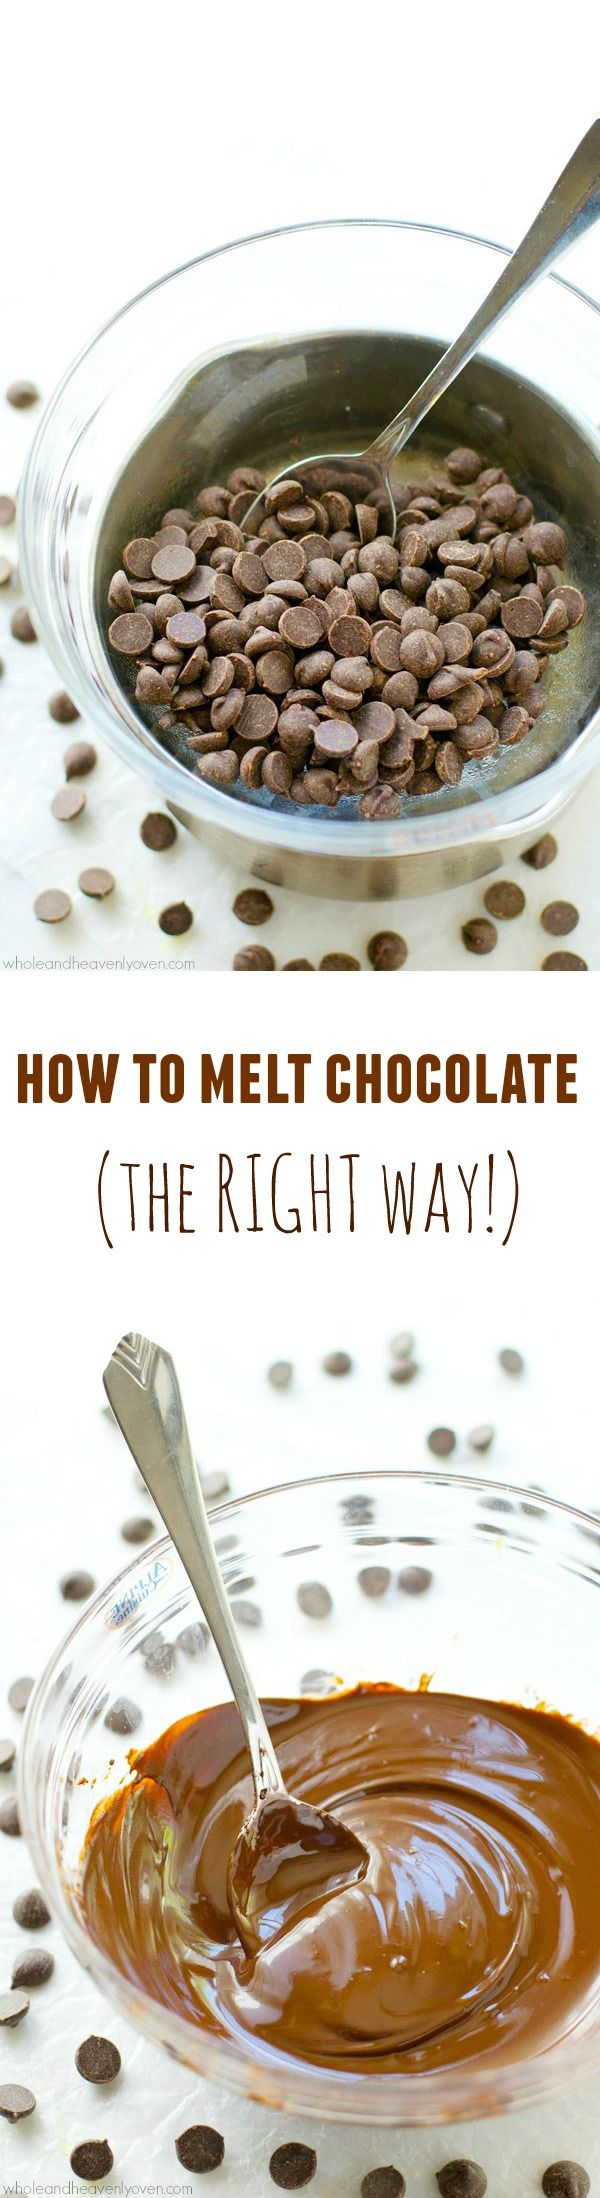 Learn how to melt chocolate perfectly every time with this easy tutorial. All you'll need is a saucepan, a bowl and all the chocolate you desire!@WholeHeavenly